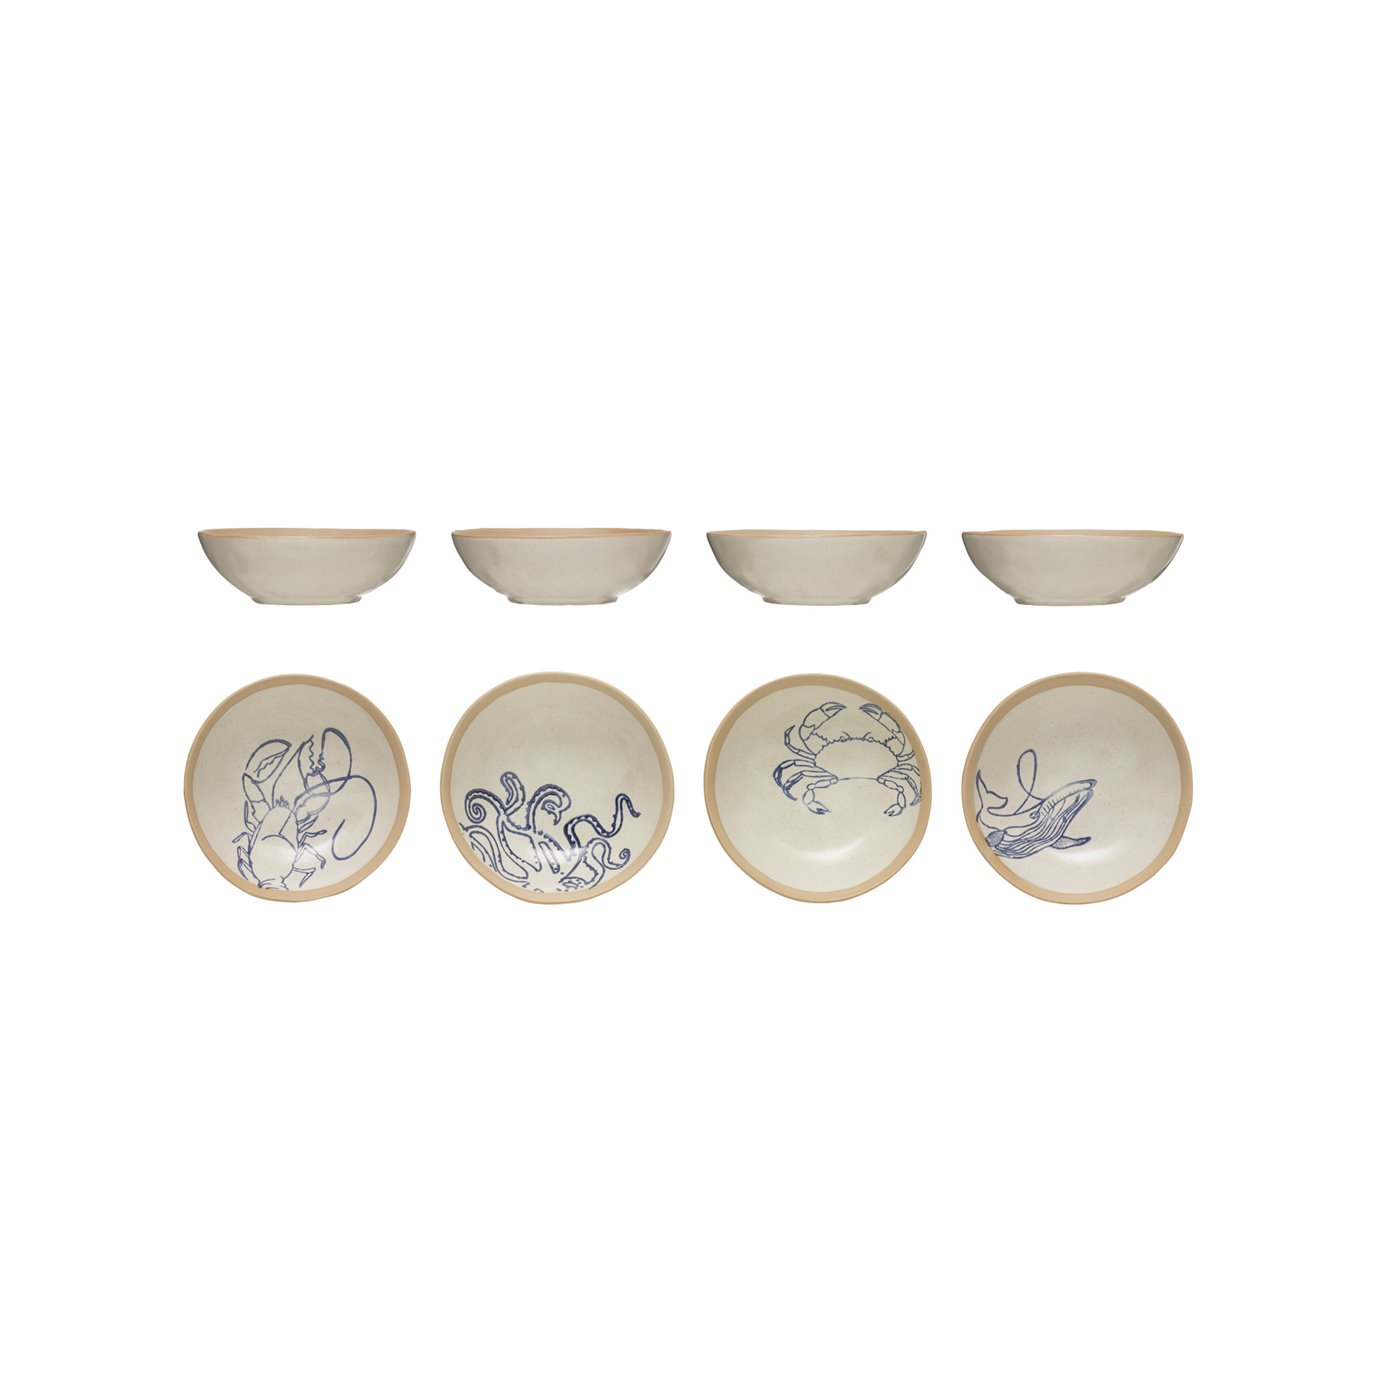 Hand-Painted Stoneware Bowl with Sea Life (Set of 4 Styles)